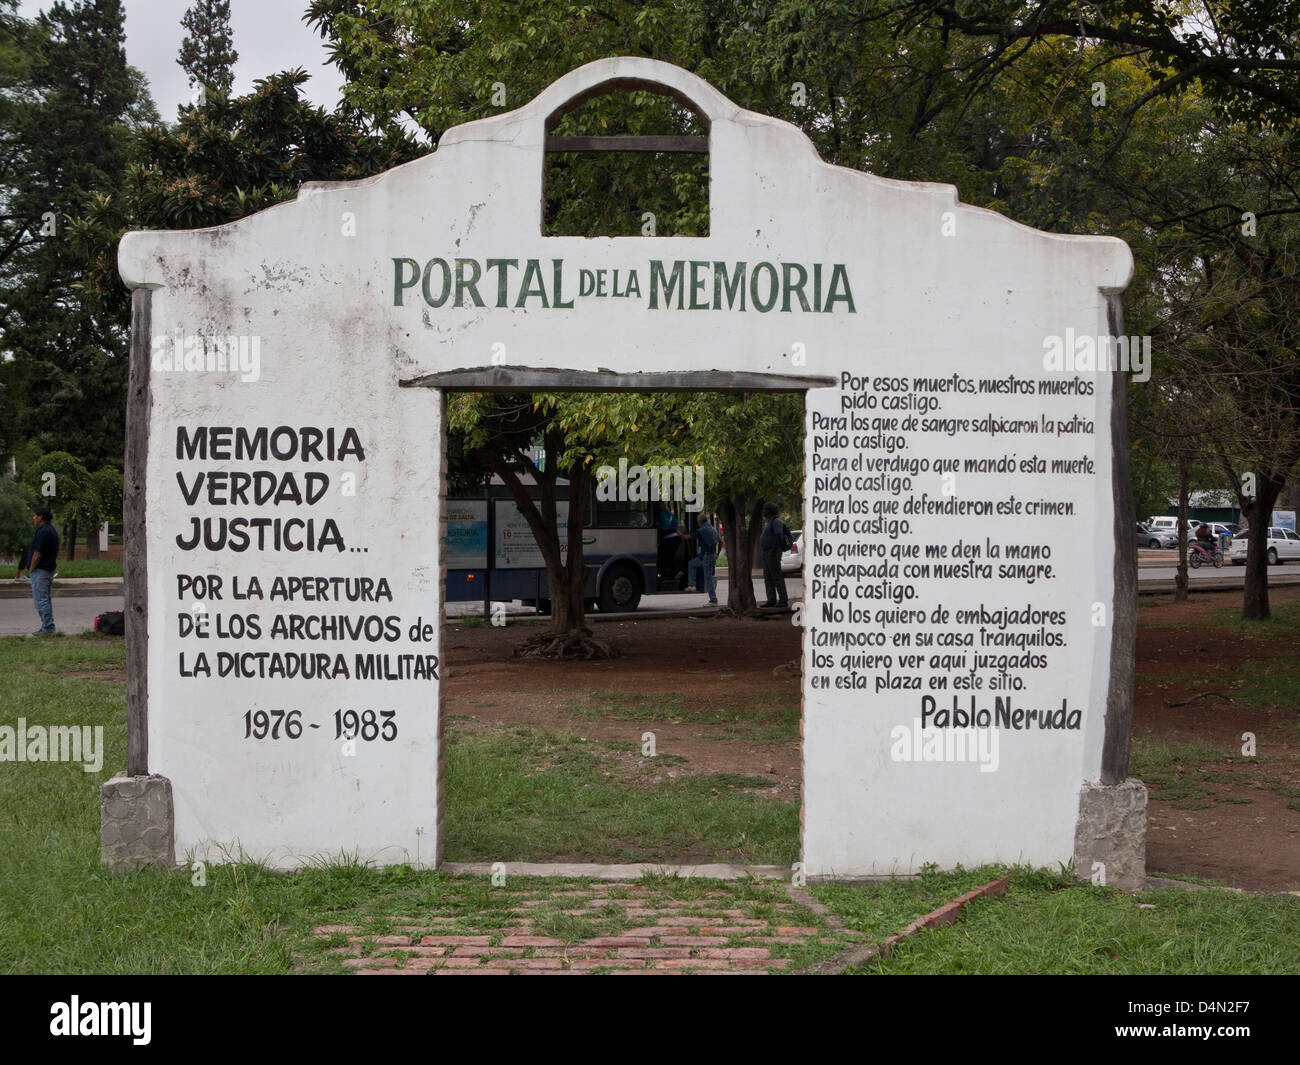 Arch in memory of disappeared during military dictatorship, with words by poet Pablo Neruda. Salta, Argentina - Stock Image